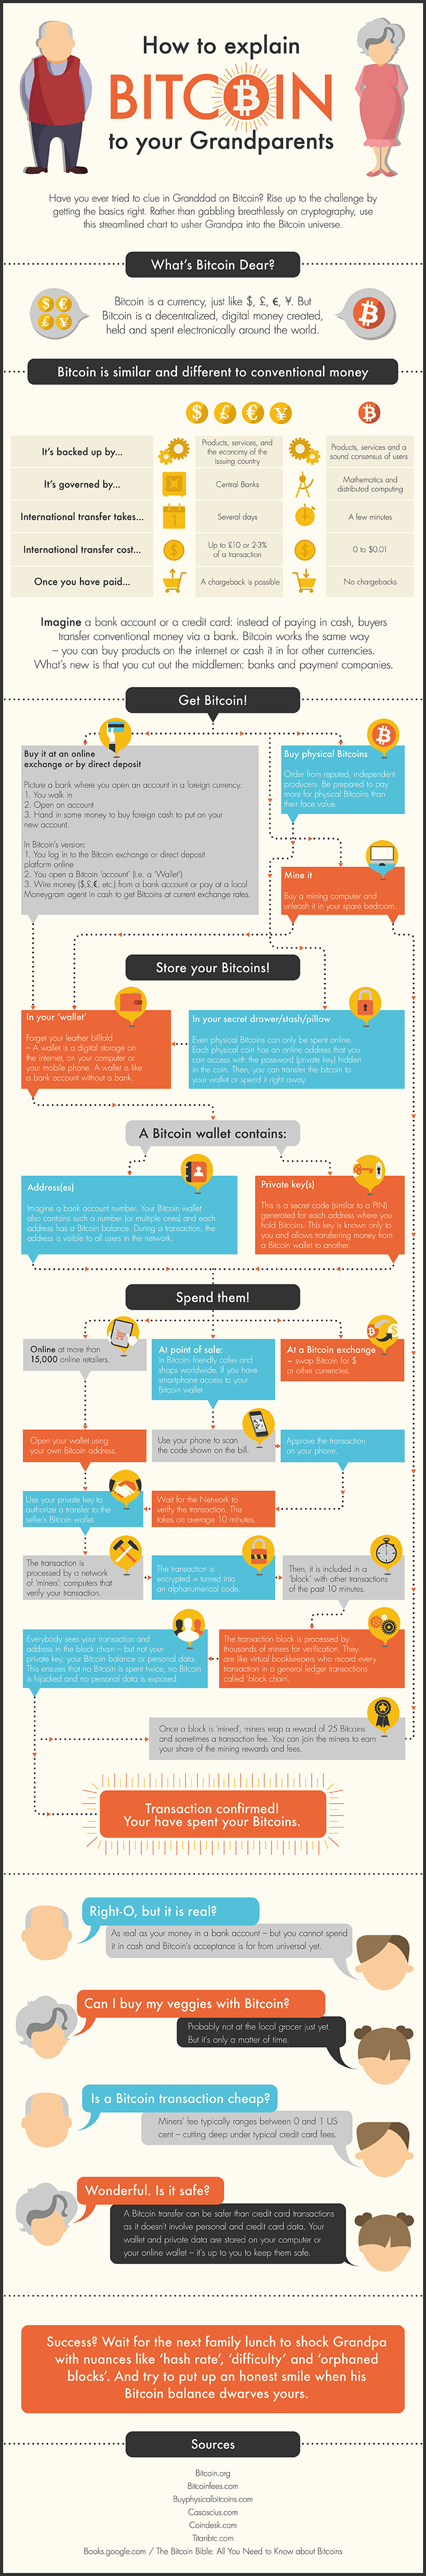 How to Explain Bitcoin to your Grandparents #infographic